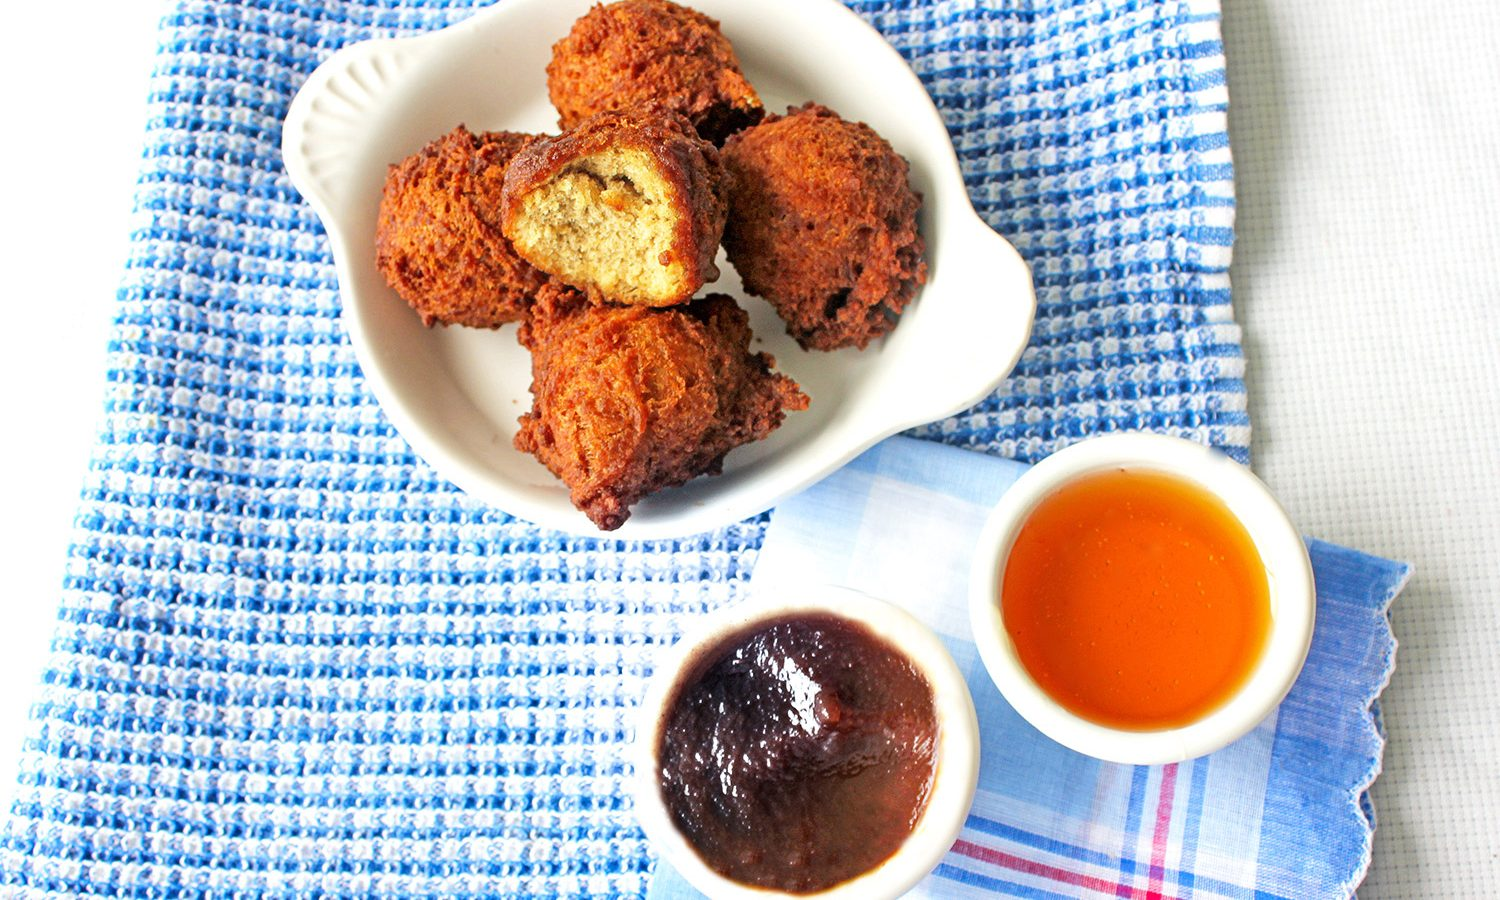 Apple Fritter Bites with dipping bowls of apple butter and honey